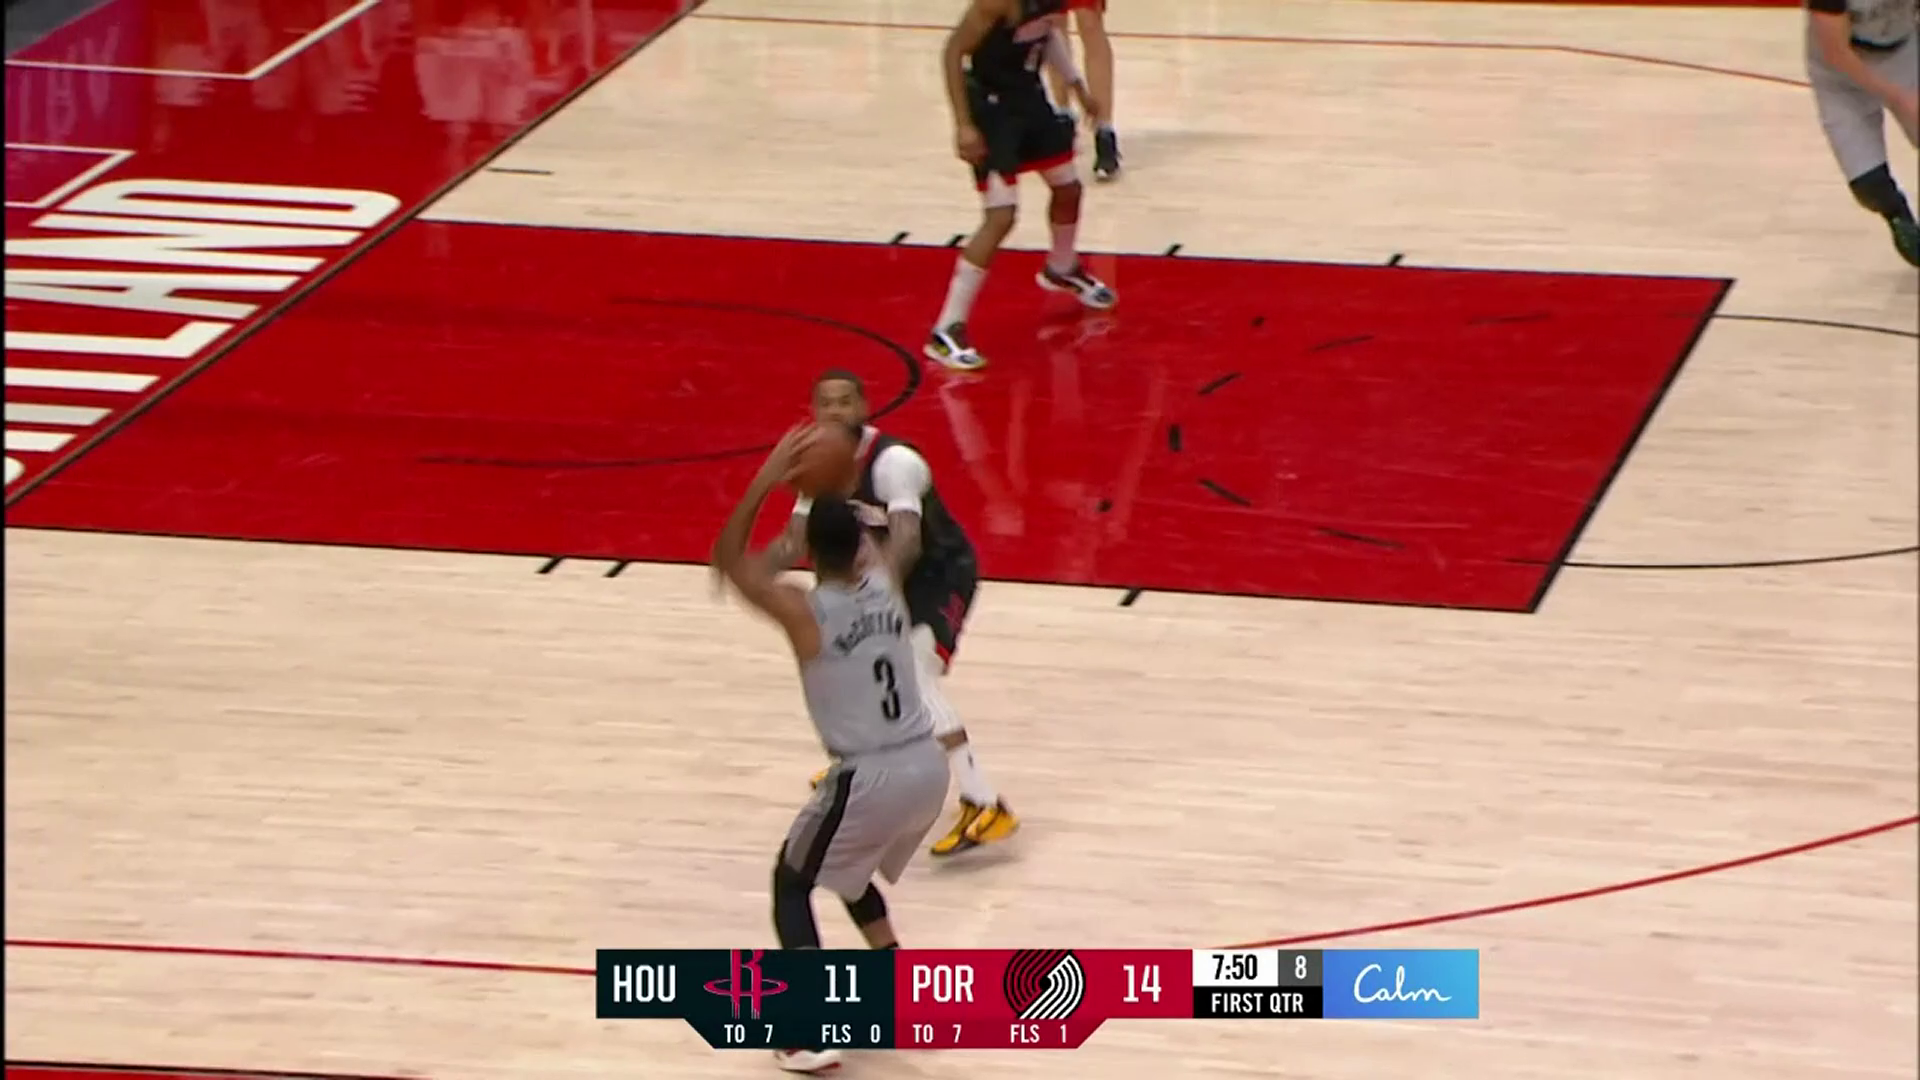 Everyone gets a hand on the ball before CJ hits the three